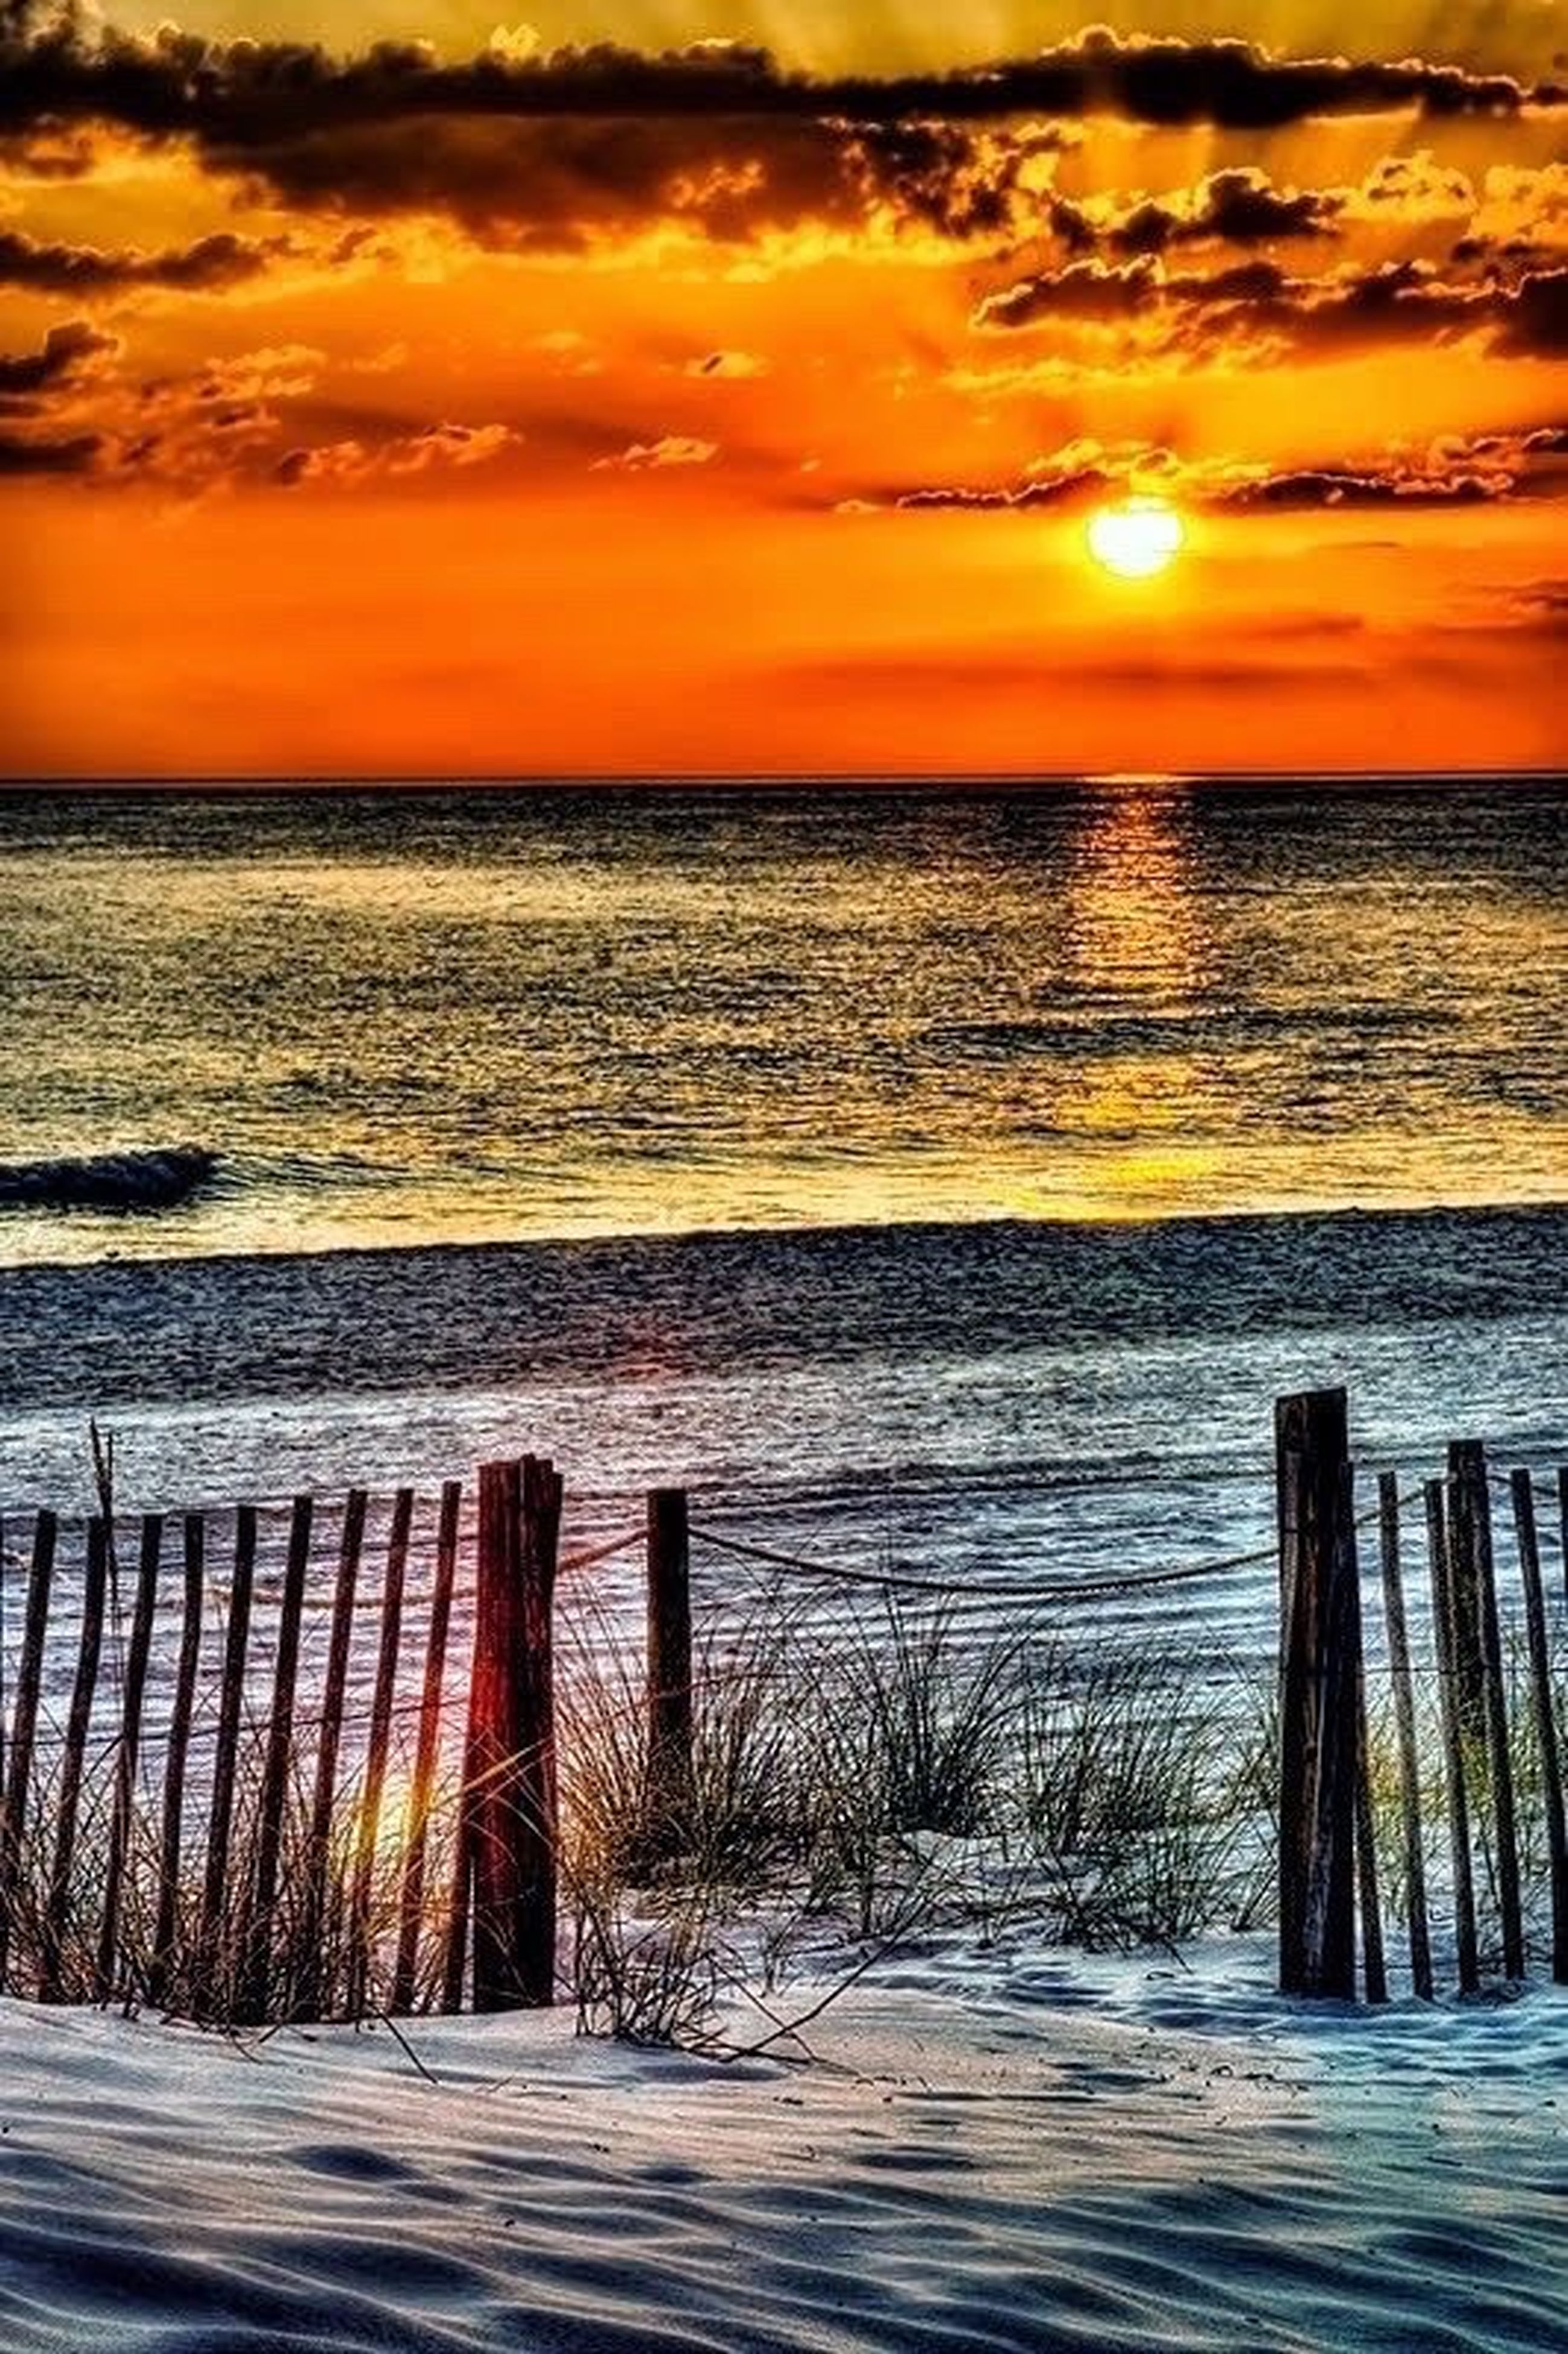 sunset, sea, orange color, beach, water, beauty in nature, nature, tranquility, tranquil scene, horizon over water, scenics, no people, outdoors, sand, splashing, sky, dramatic sky, wave, day